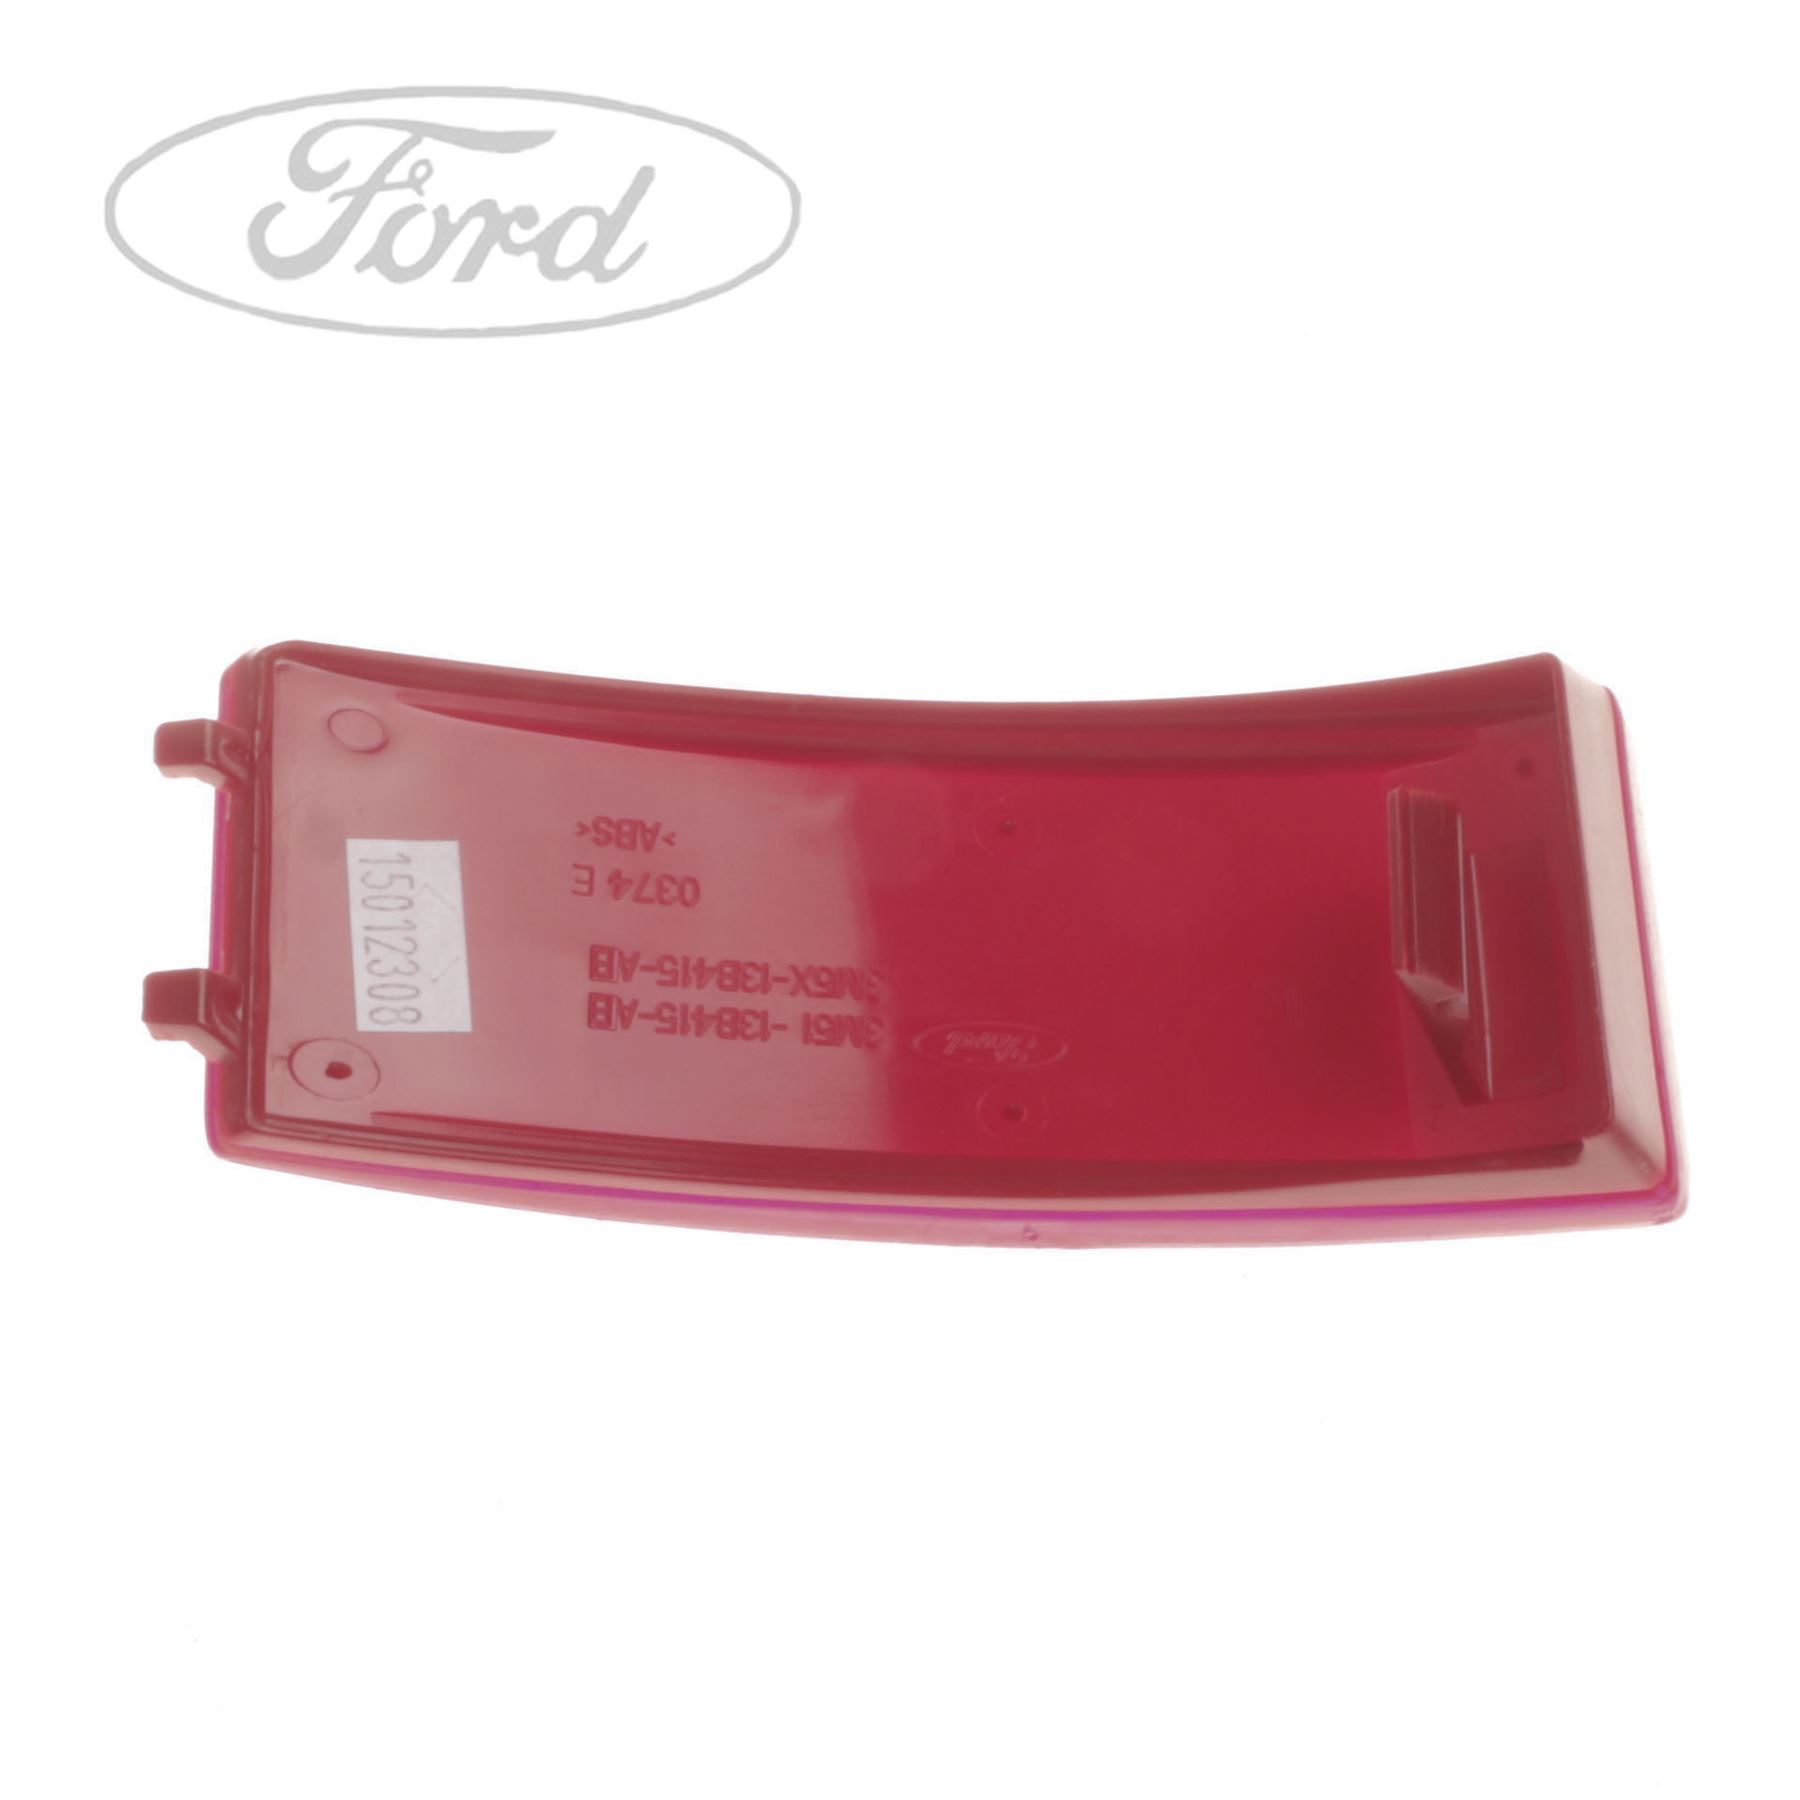 Genuine Ford C-Max Focus C-Max Rear N//S Lamp Light Reflector Plate 1222991